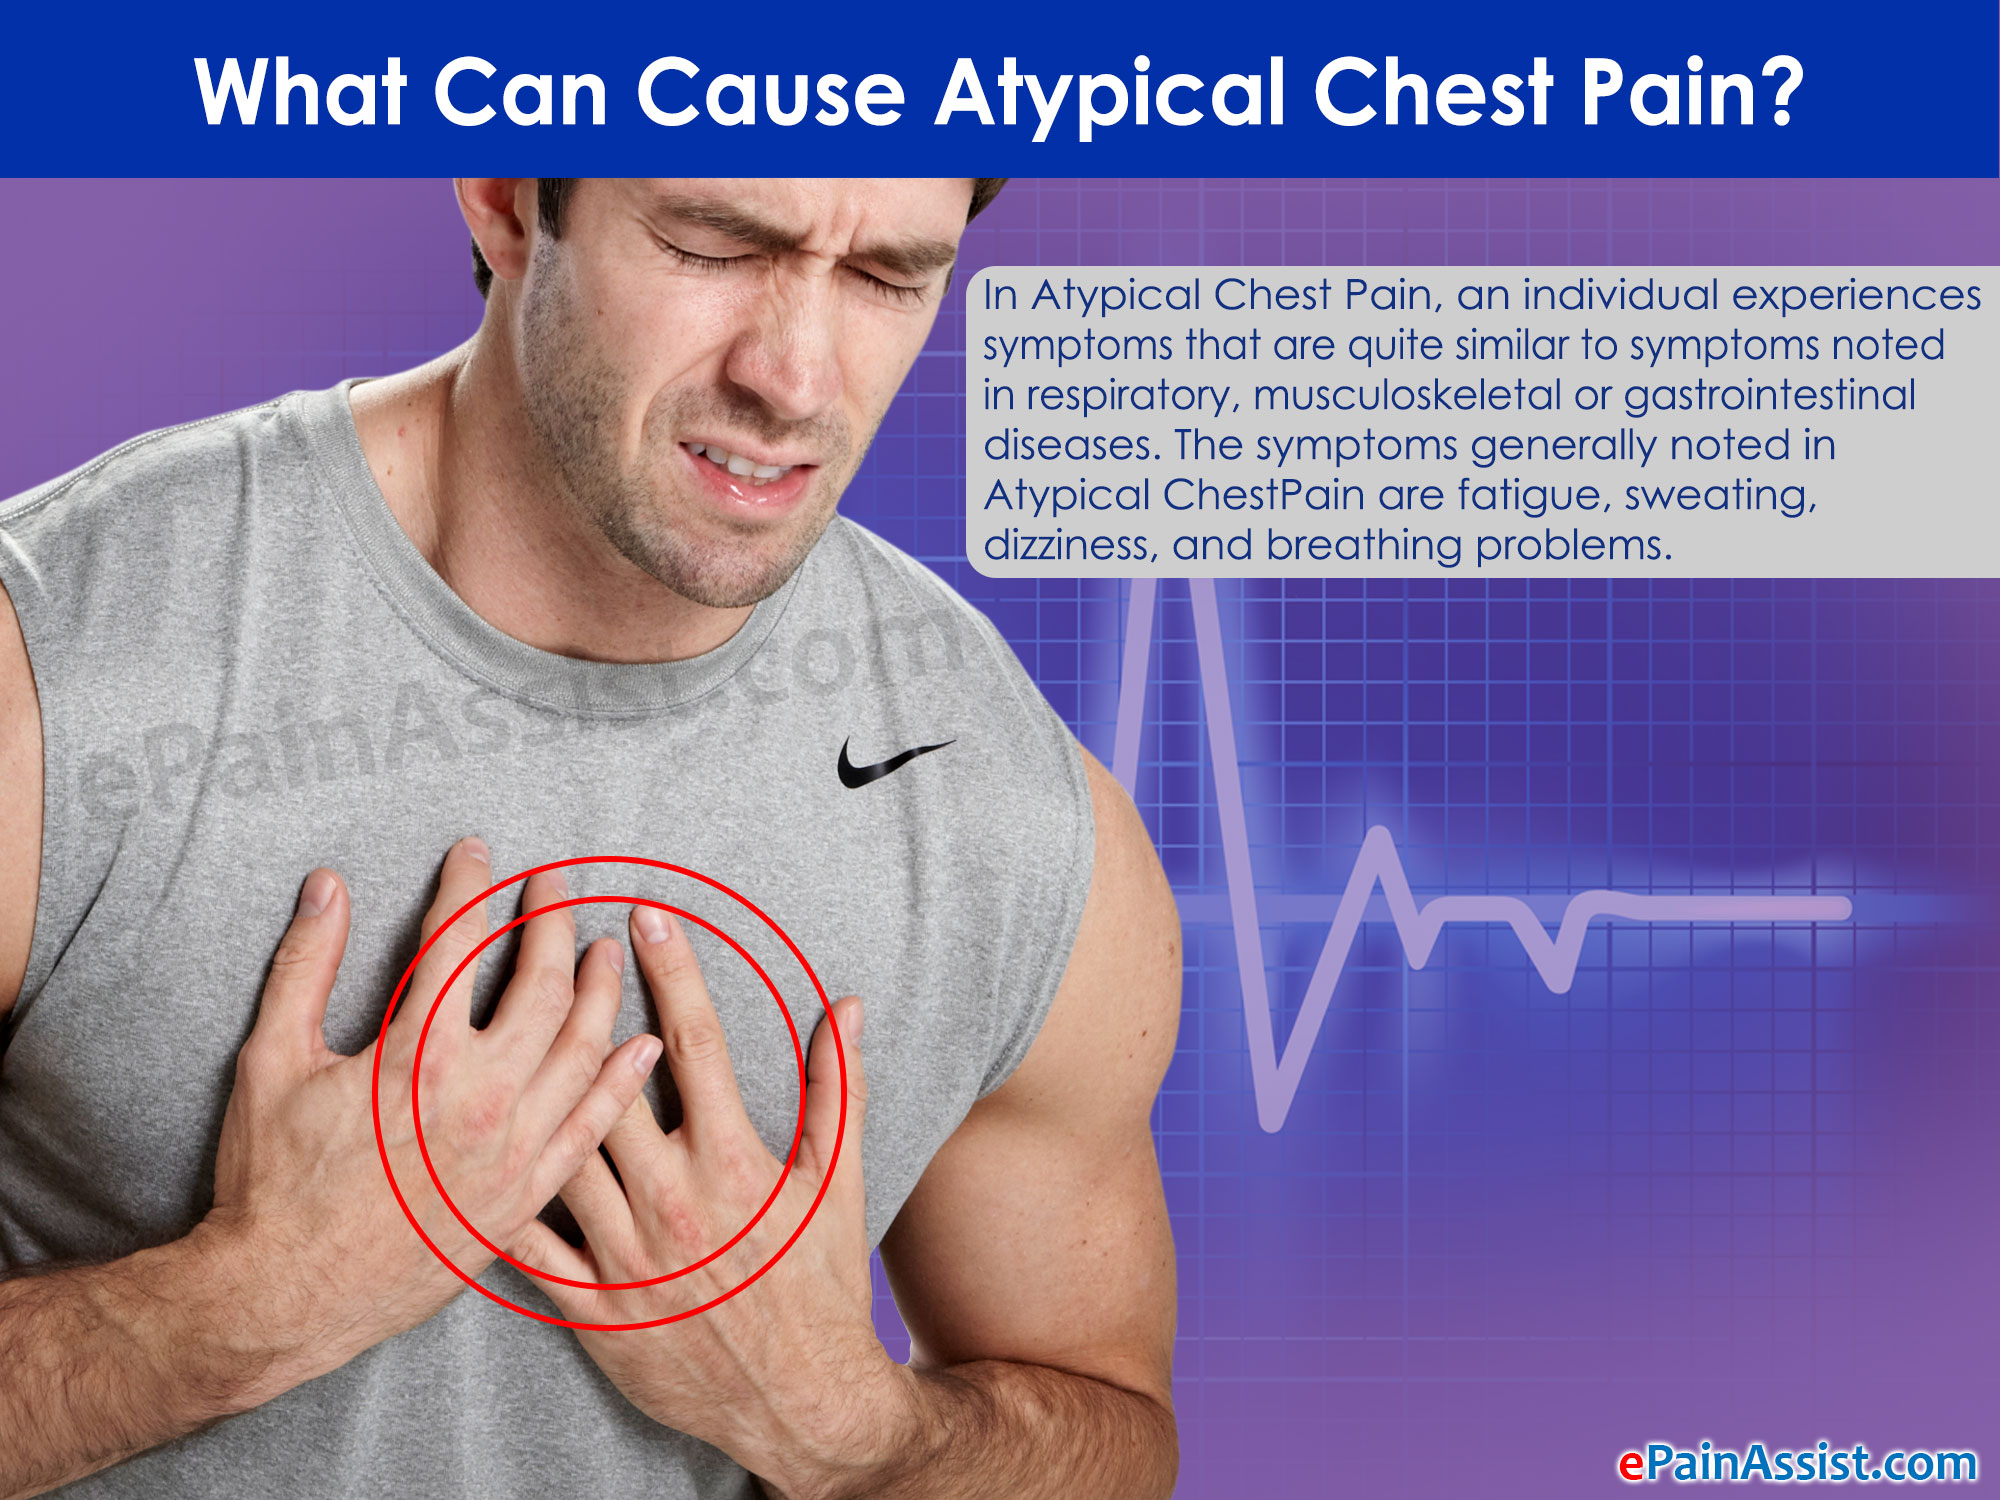 What Can Cause Atypical Chest Pain